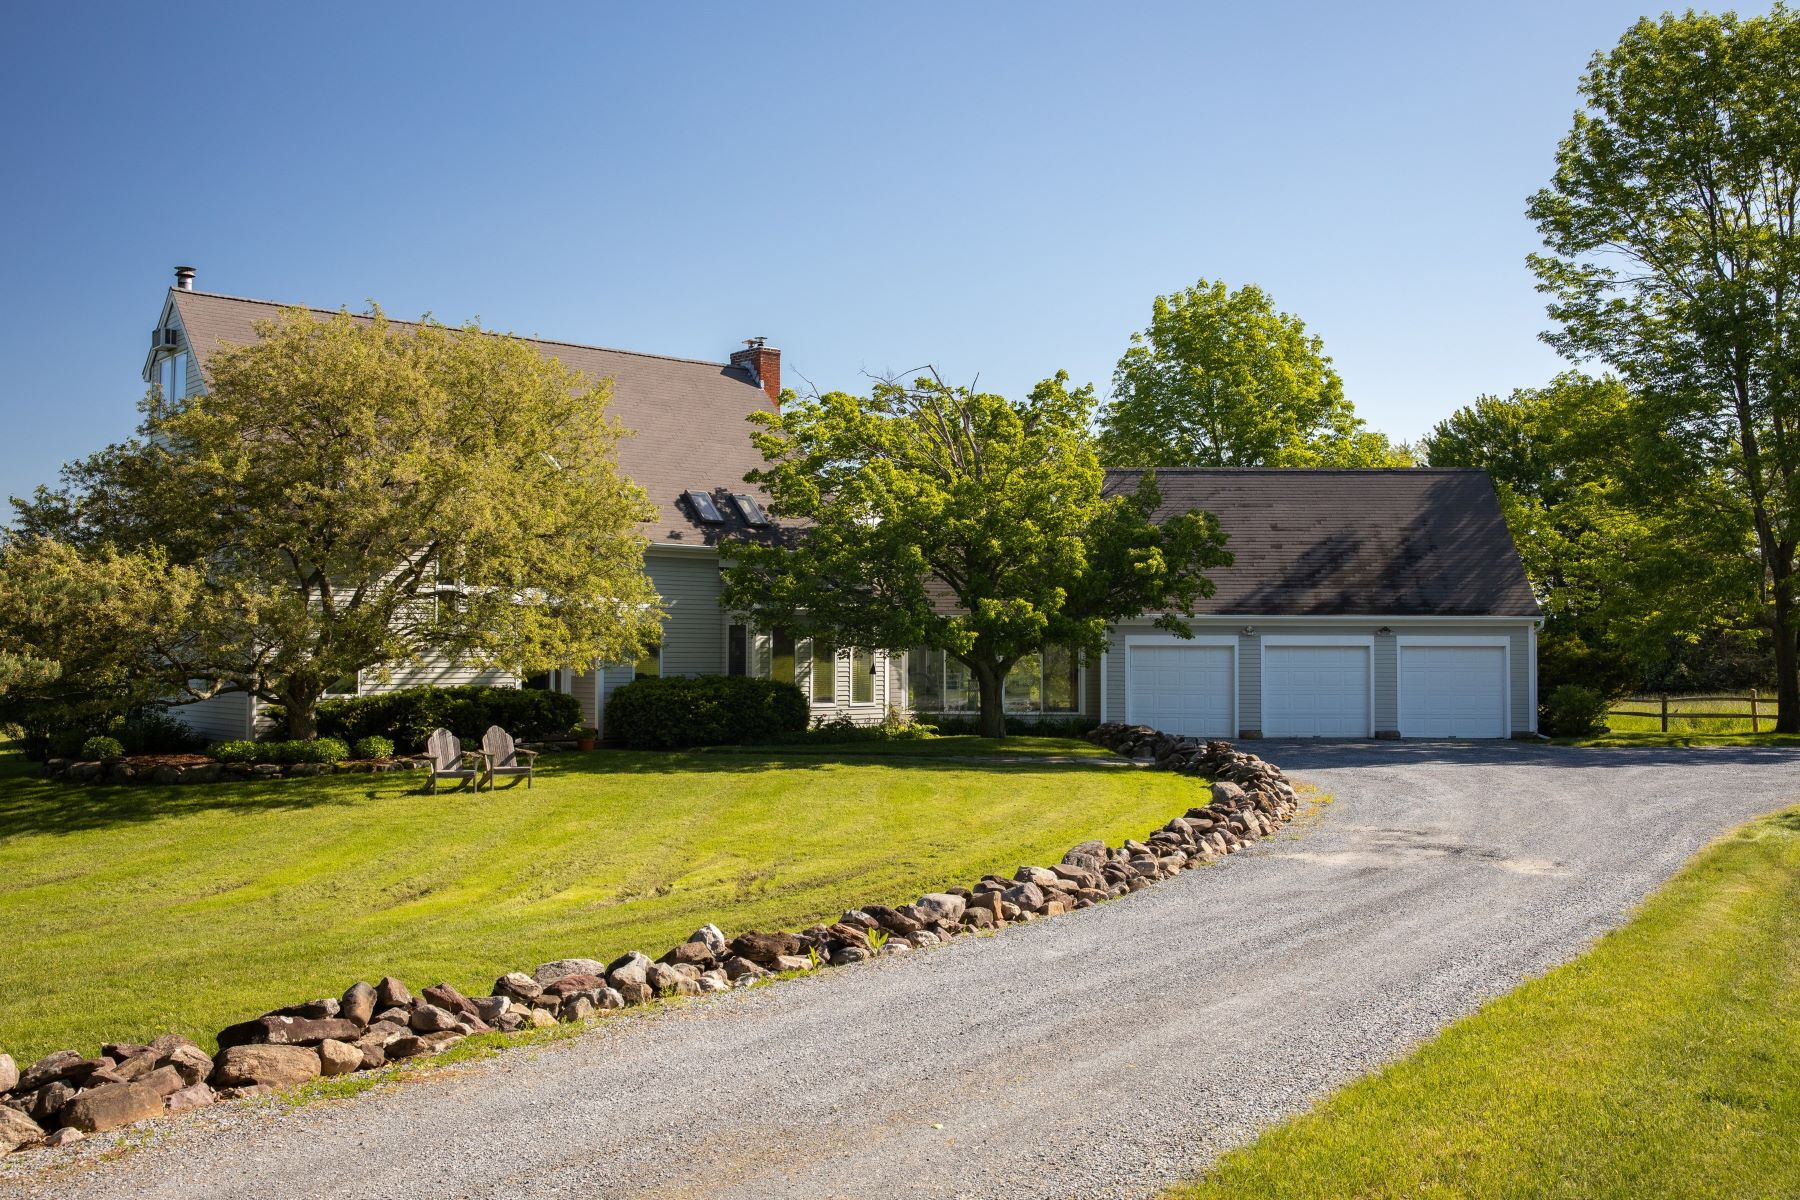 Single Family Homes for Sale at 96 Soaring Hawk Lane, Charlotte 96 Soaring Hawk Ln Charlotte, Vermont 05445 United States